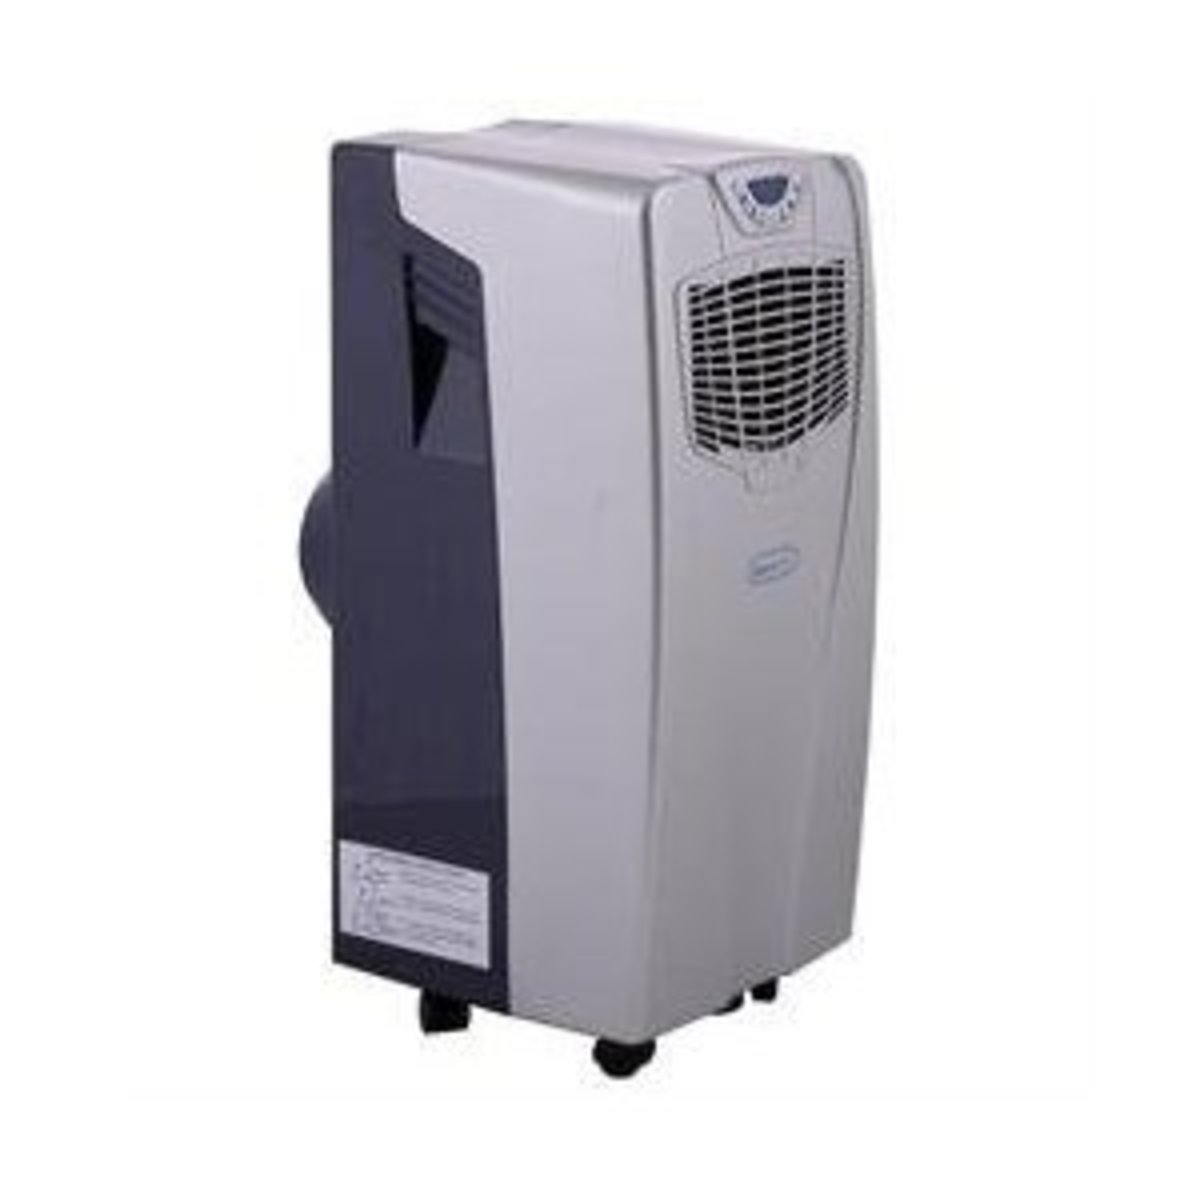 NewAir AC-10000E 10,000 BTU Portable Air Conditioner With AutoEvaporative Technology